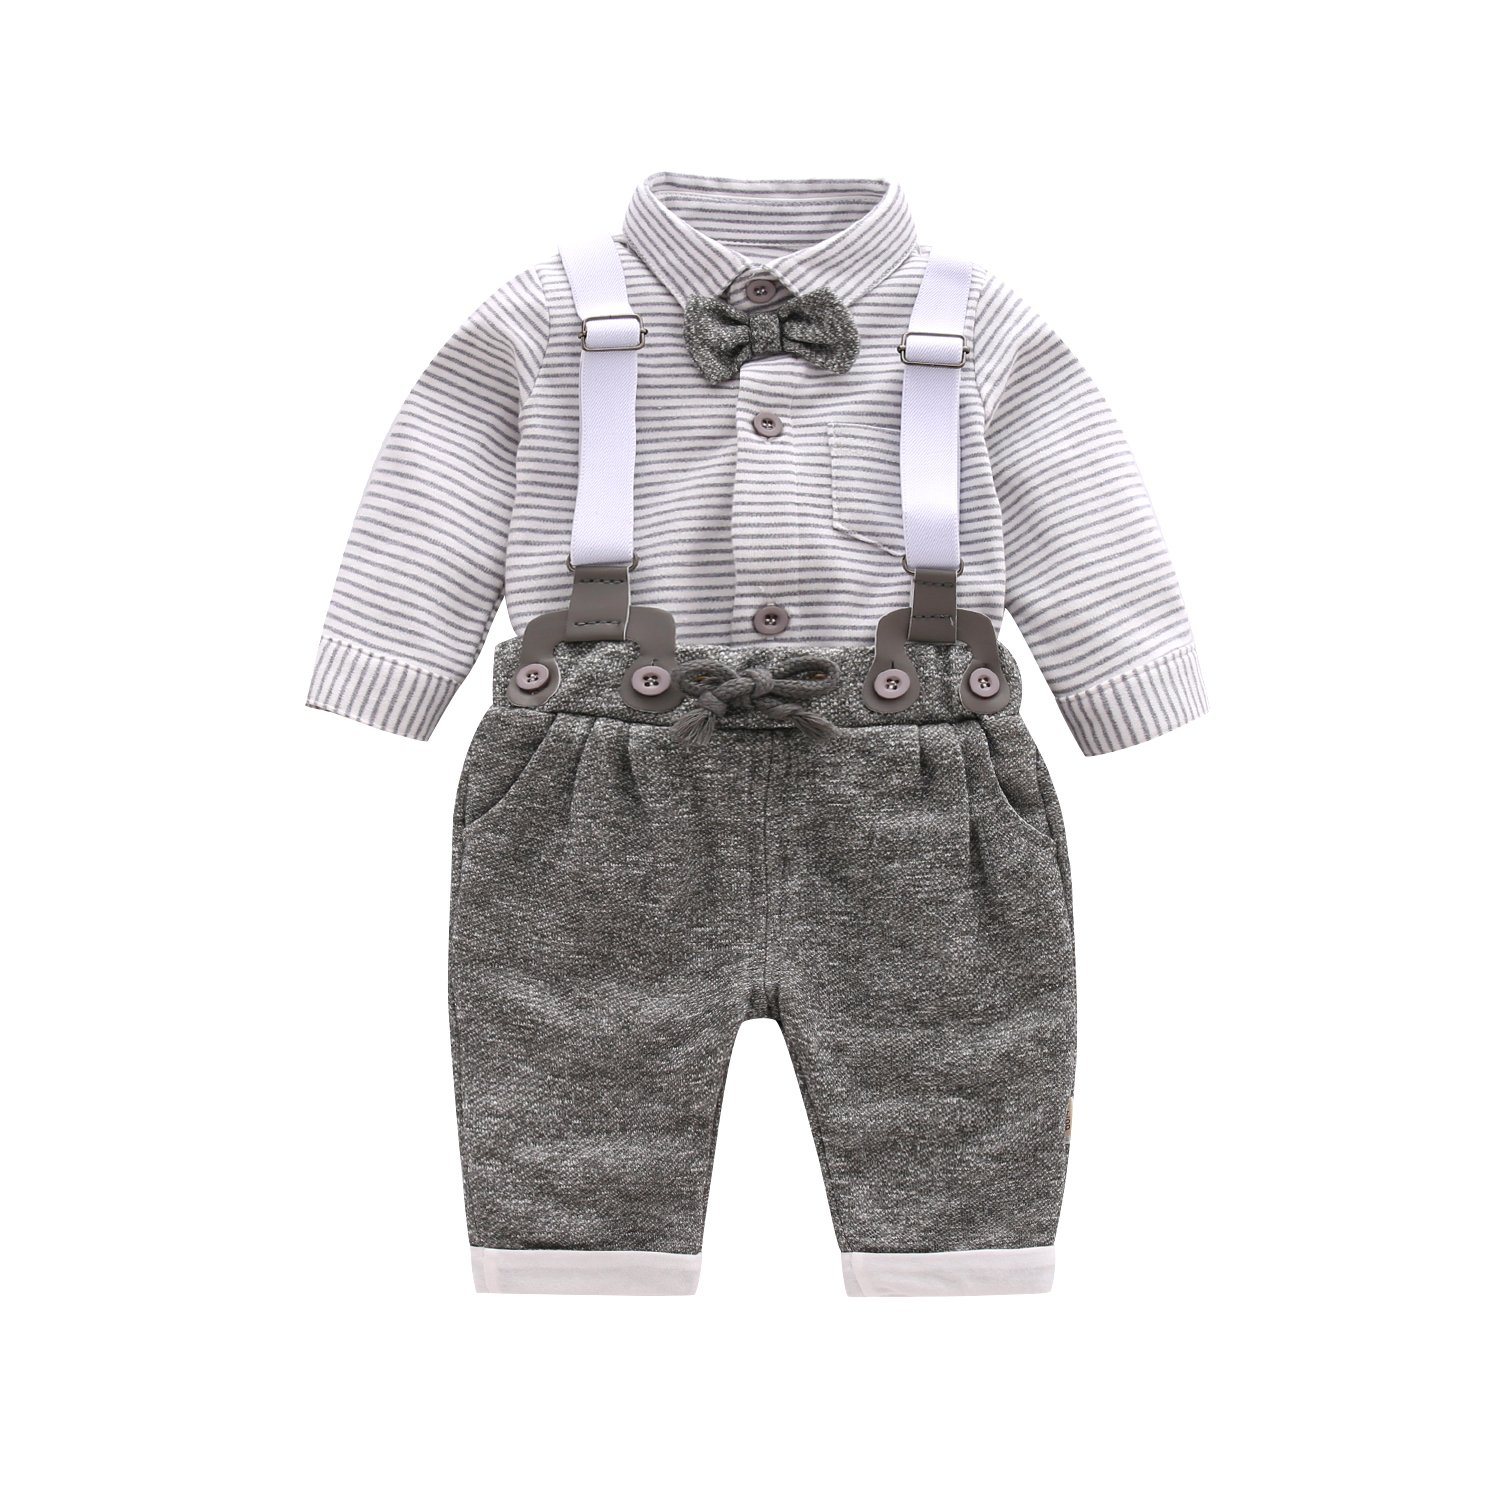 Baby Boy Clothing Sets with Bowtie,Infant Gray Stripe Onesie + Bibs Overalls + Suspenders Outfit Suits